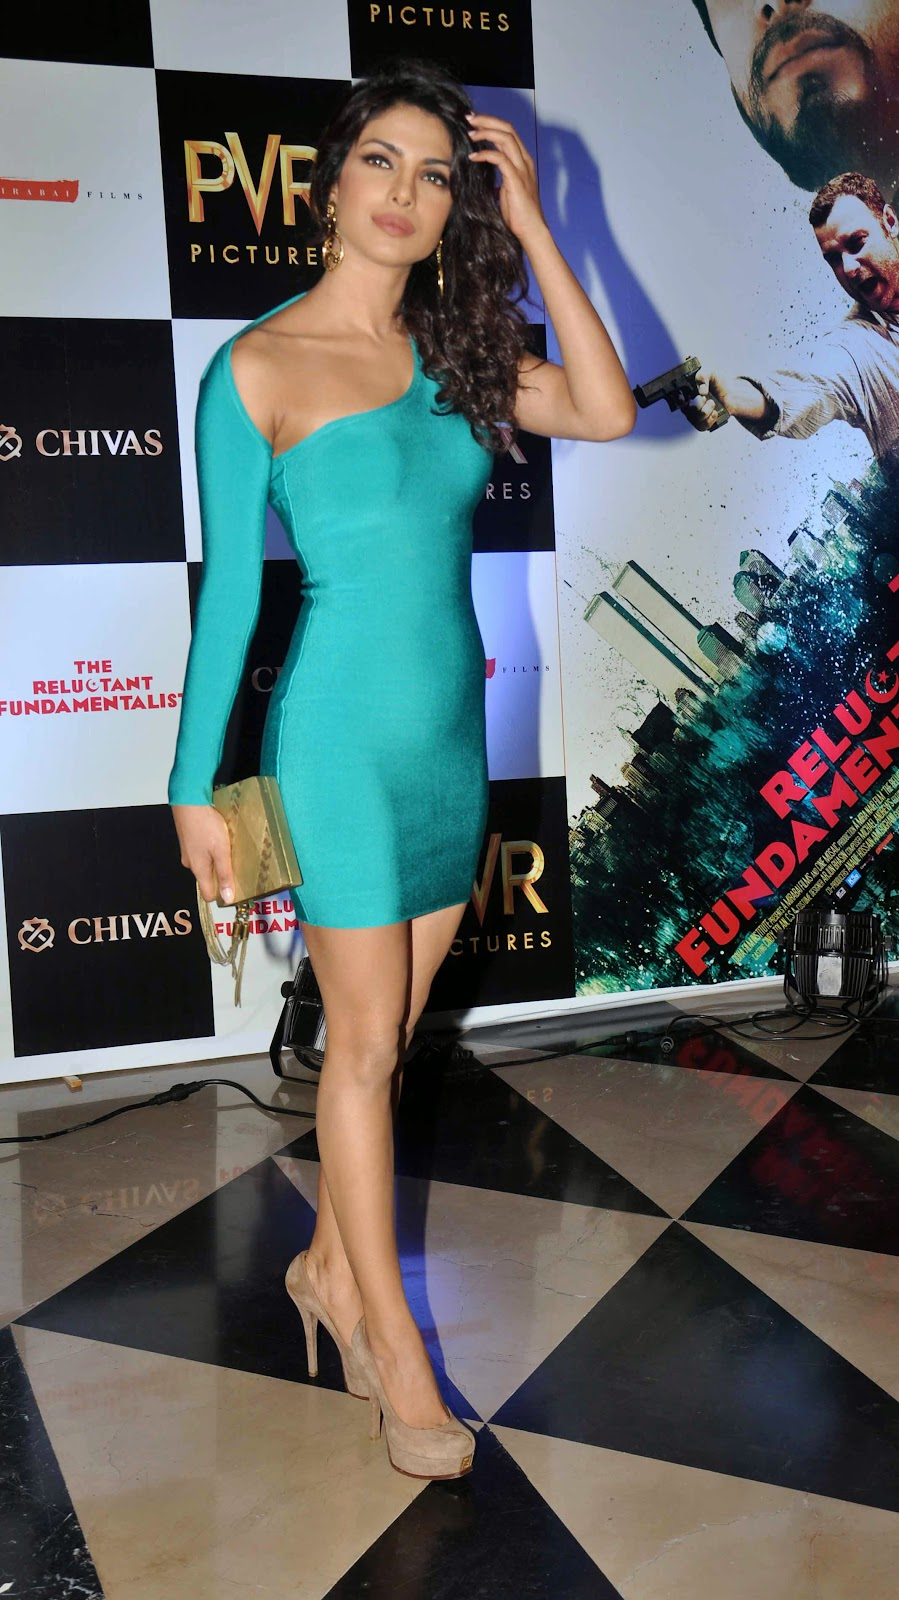 priyanka-chopra-in-tight-blue-mini-dress-flaunting-her-toned-body